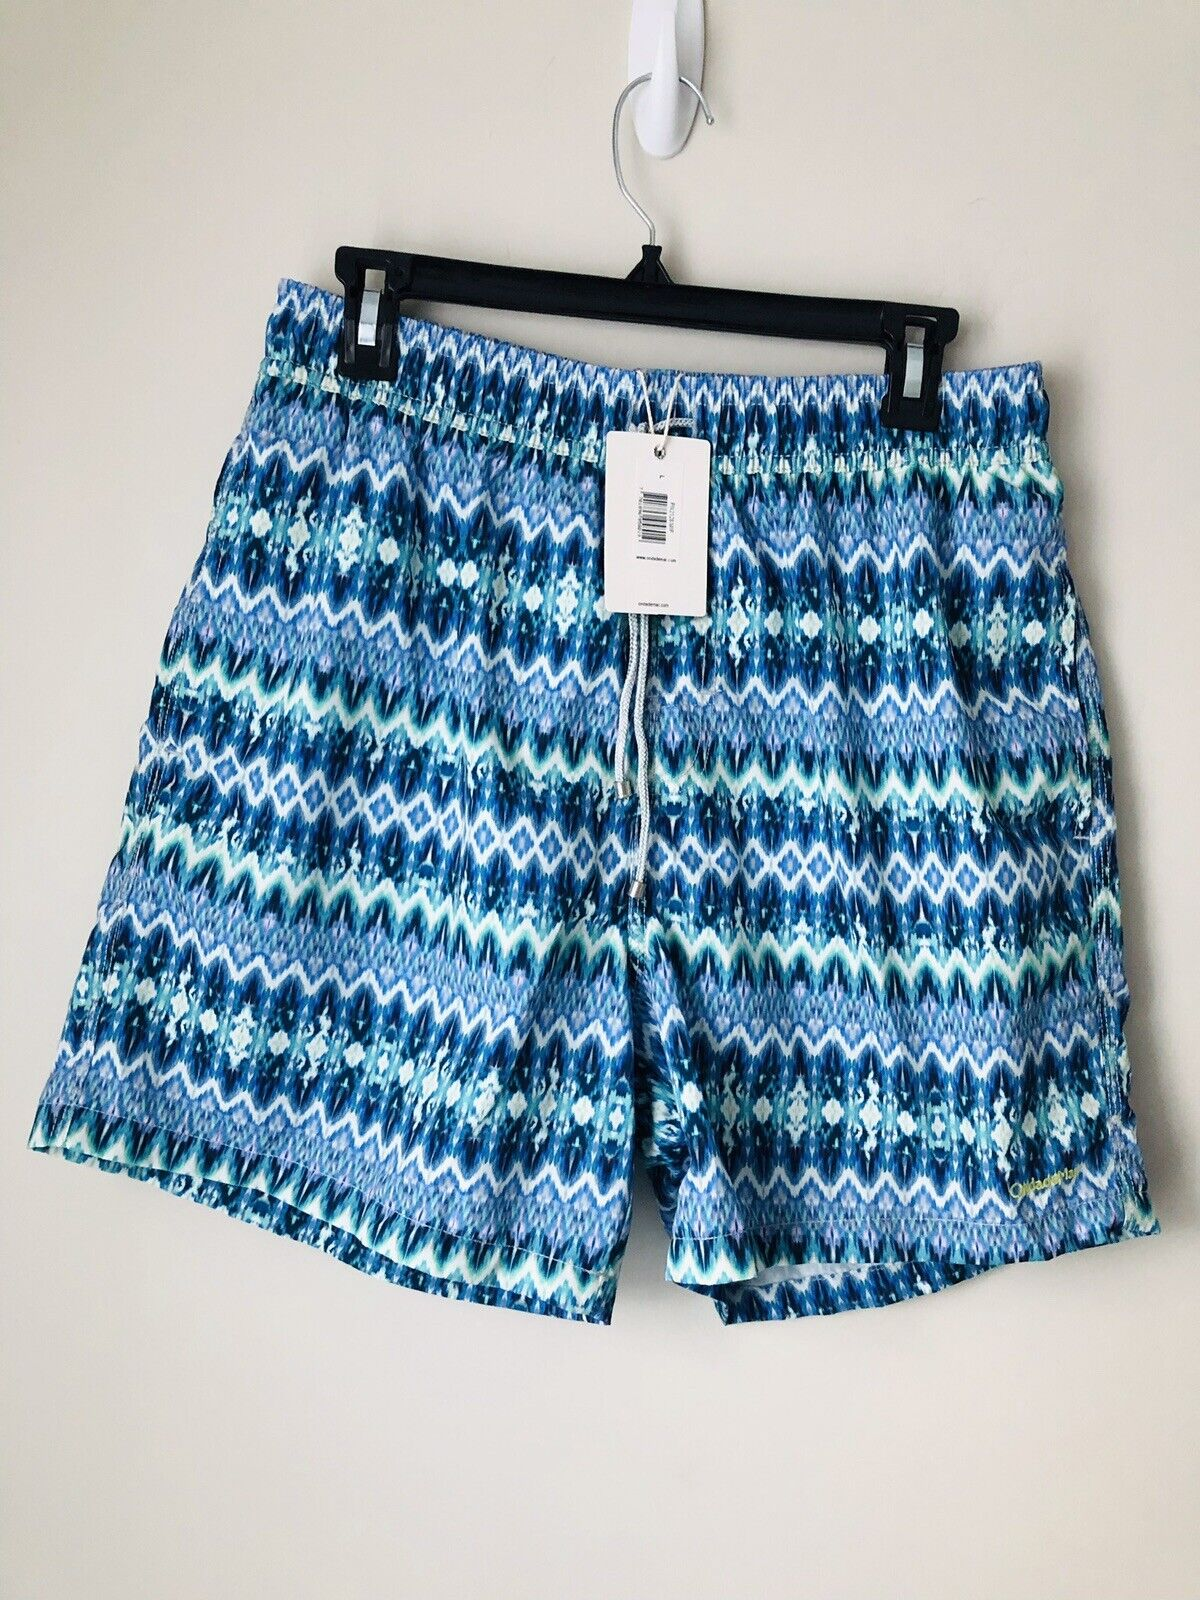 NWT Ondademar PN2128 MIP Swim Trunks - Large